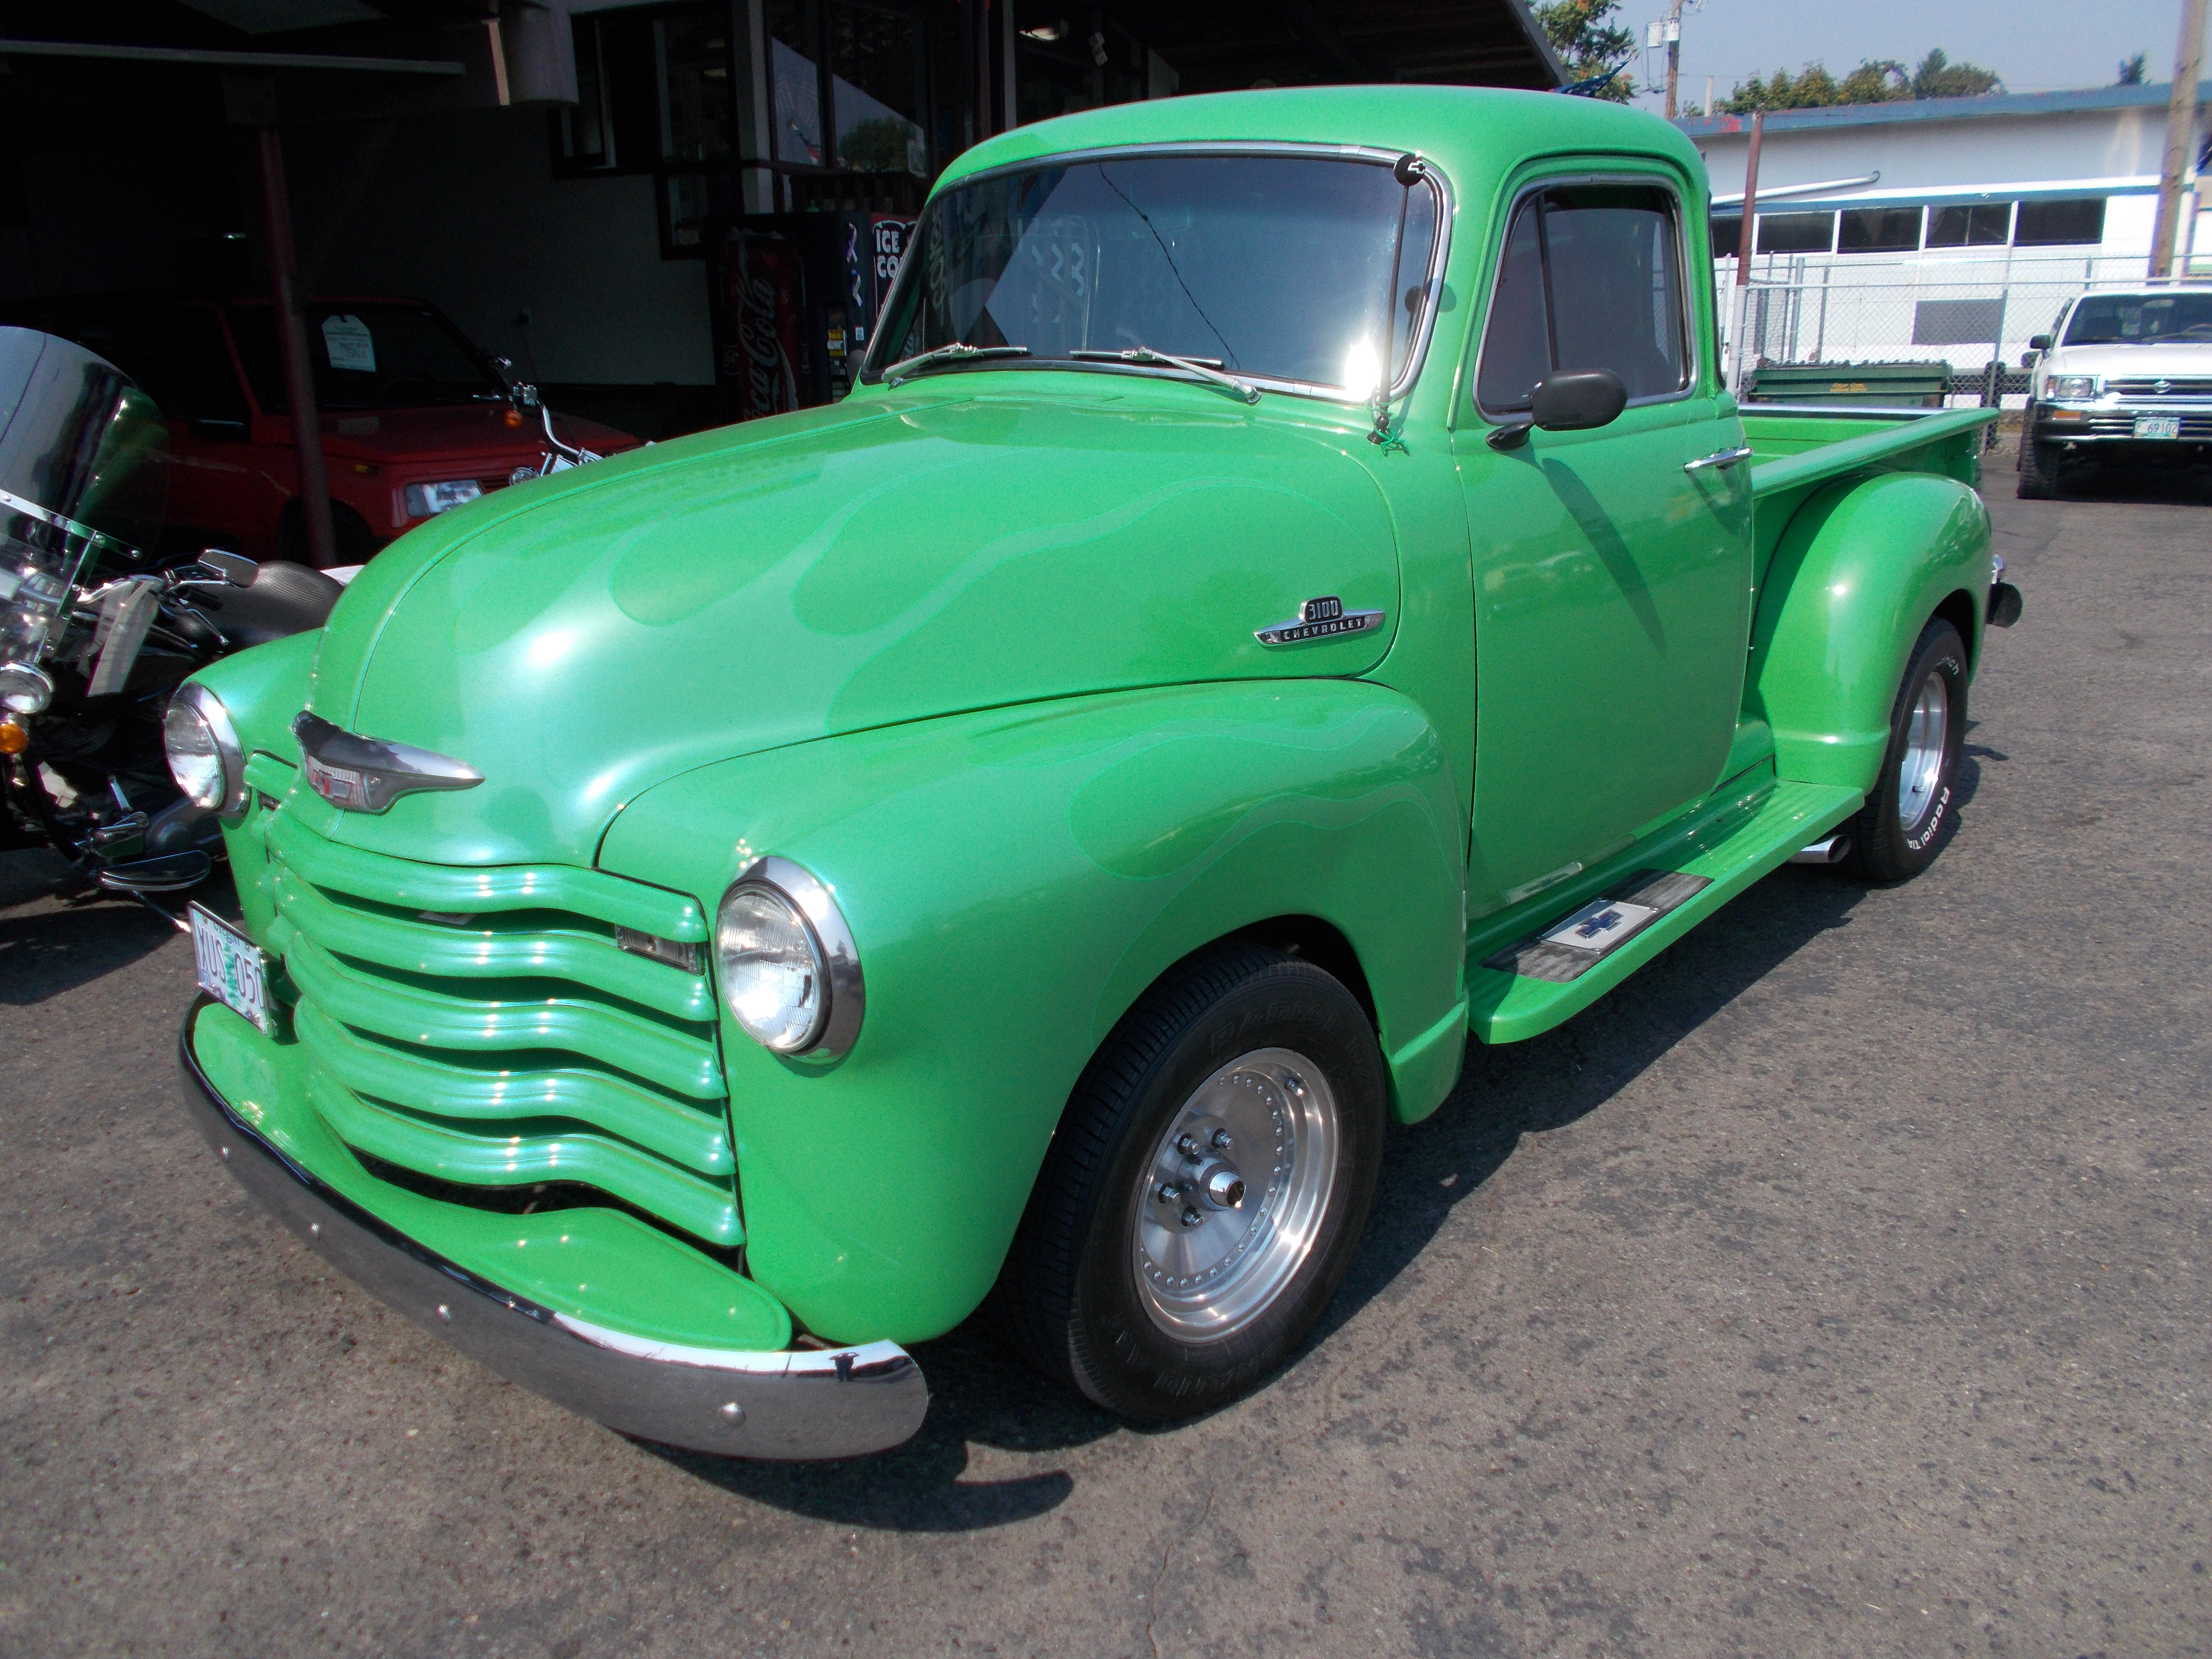 Hamilton Auto Sales 1949 Chevy Truck 5 Window 1955 3100 Pickup 1st Series Street Rod 283 V 8 Power Pack Heads Rebuilt 3 2 Barrel Carbs W Progressive Linkage Headers New Exhaust